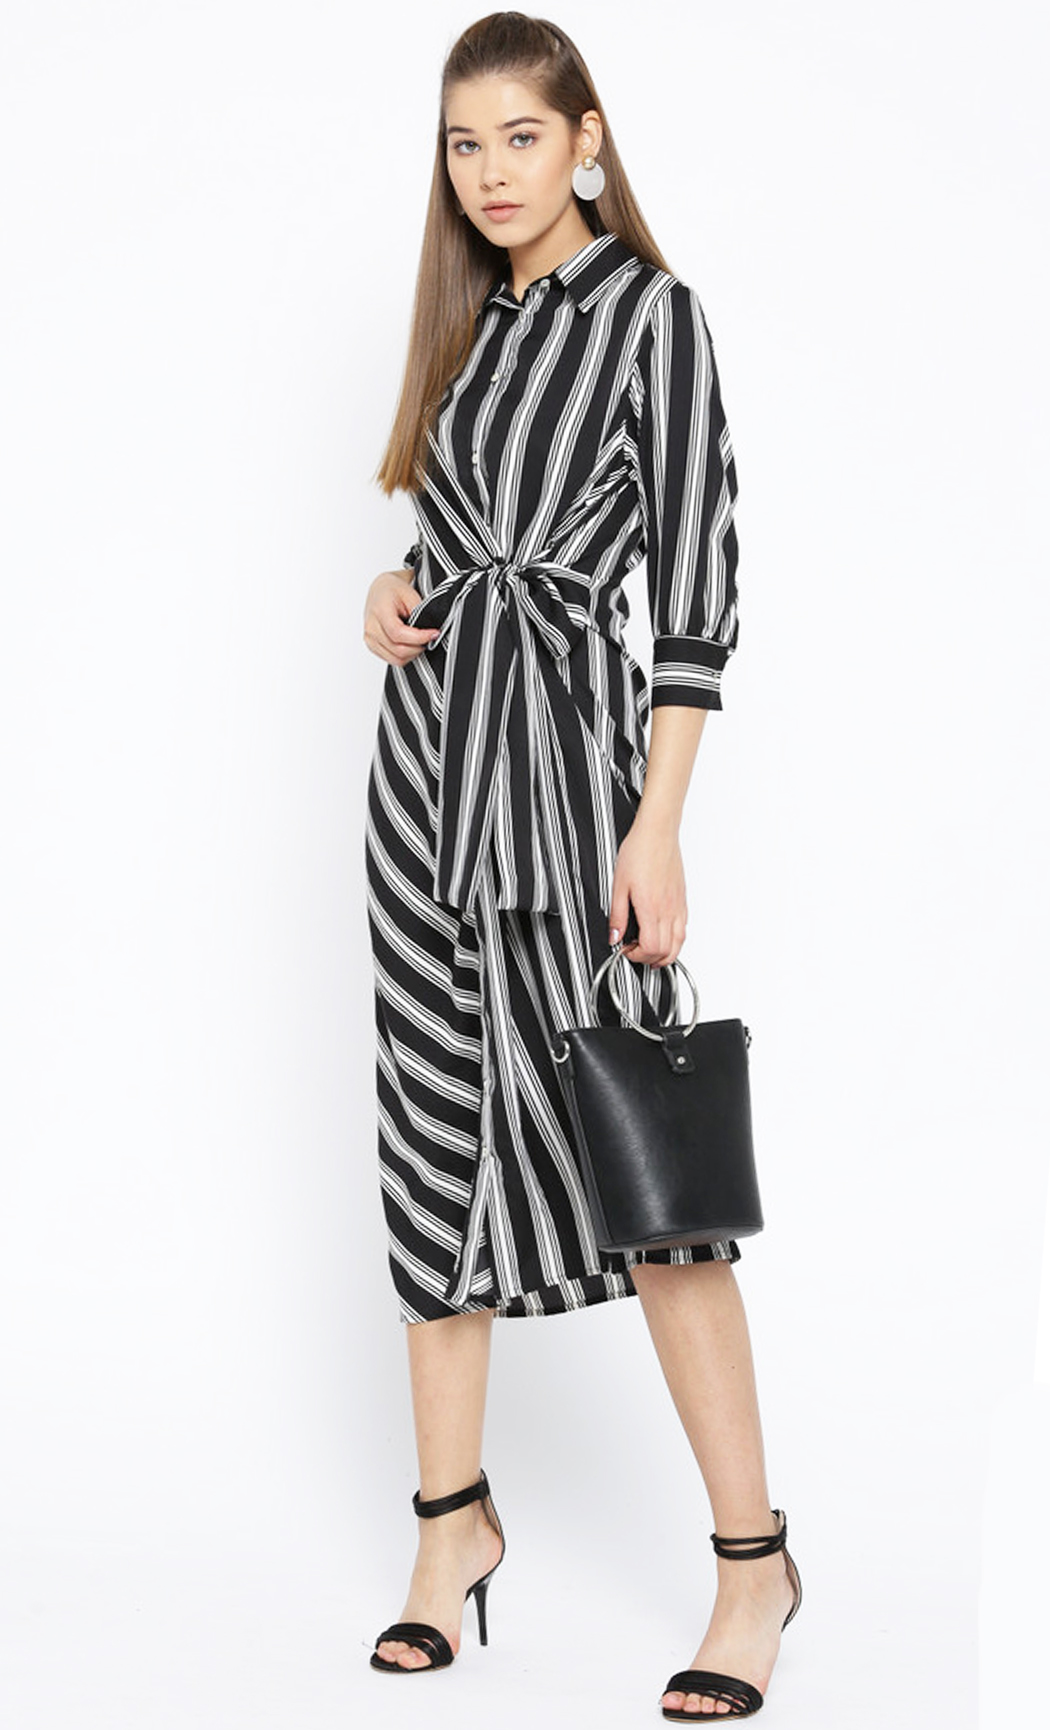 Monochrome Wonder Woman Striped Tie Dress. Buy Online